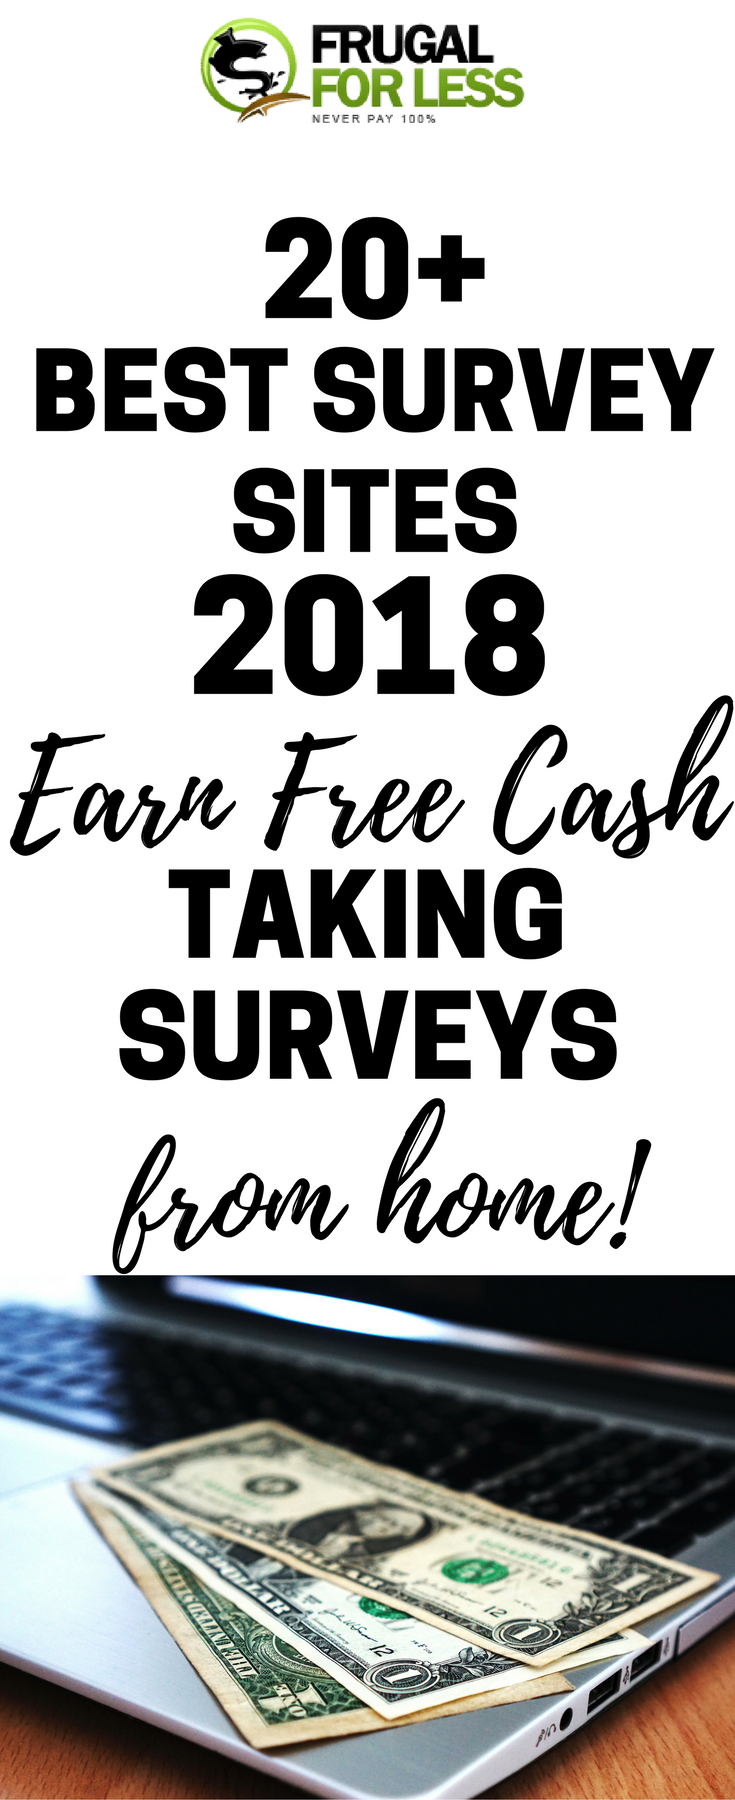 20 Best Survey Sites 2018: Earn Free Cash Taking Surveys From Home ...